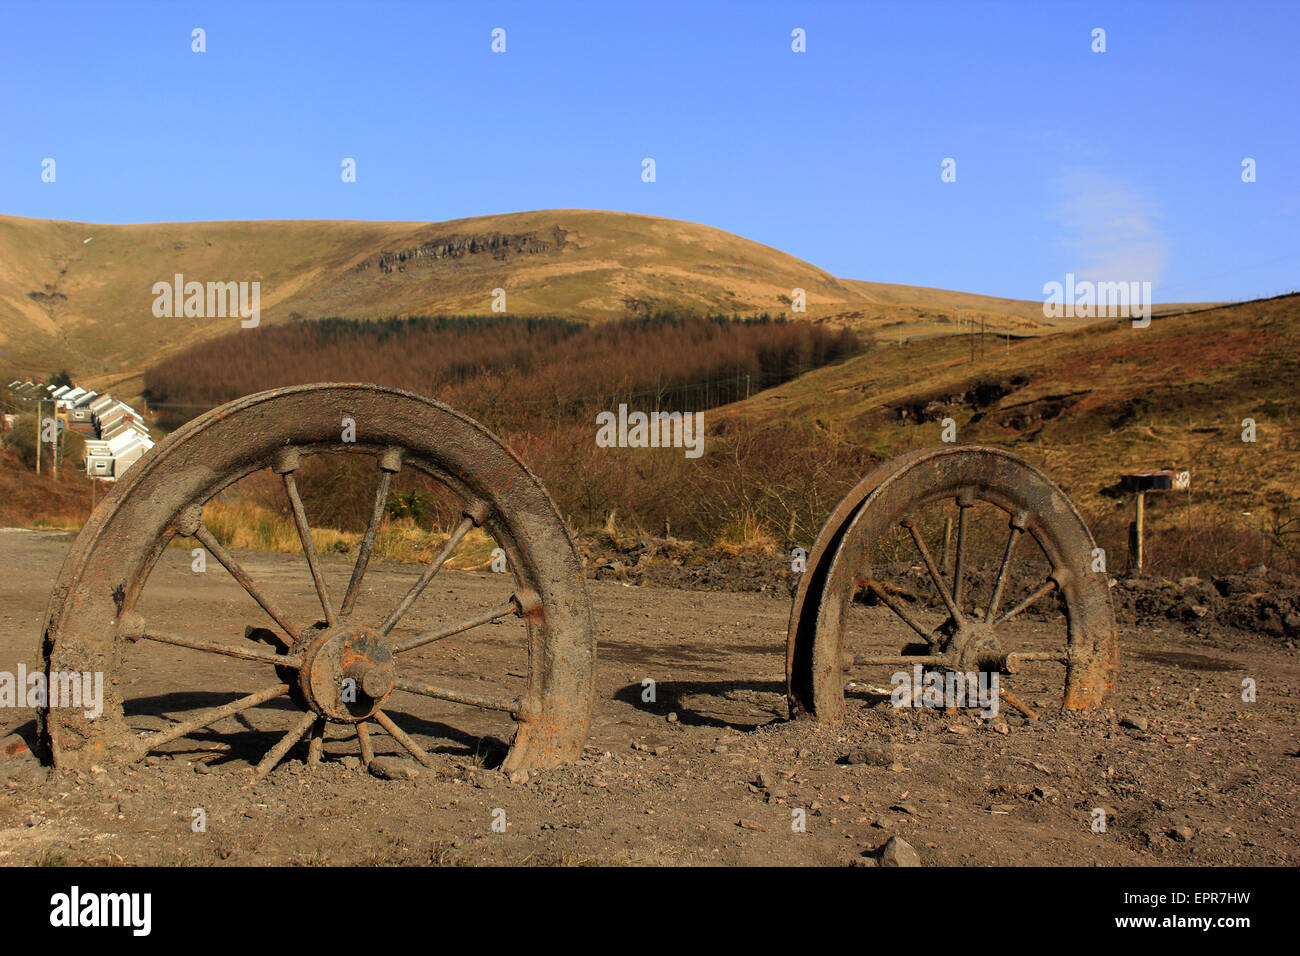 Old mining wheels at the top of the Garw Valley, Blaengarw - Stock Image